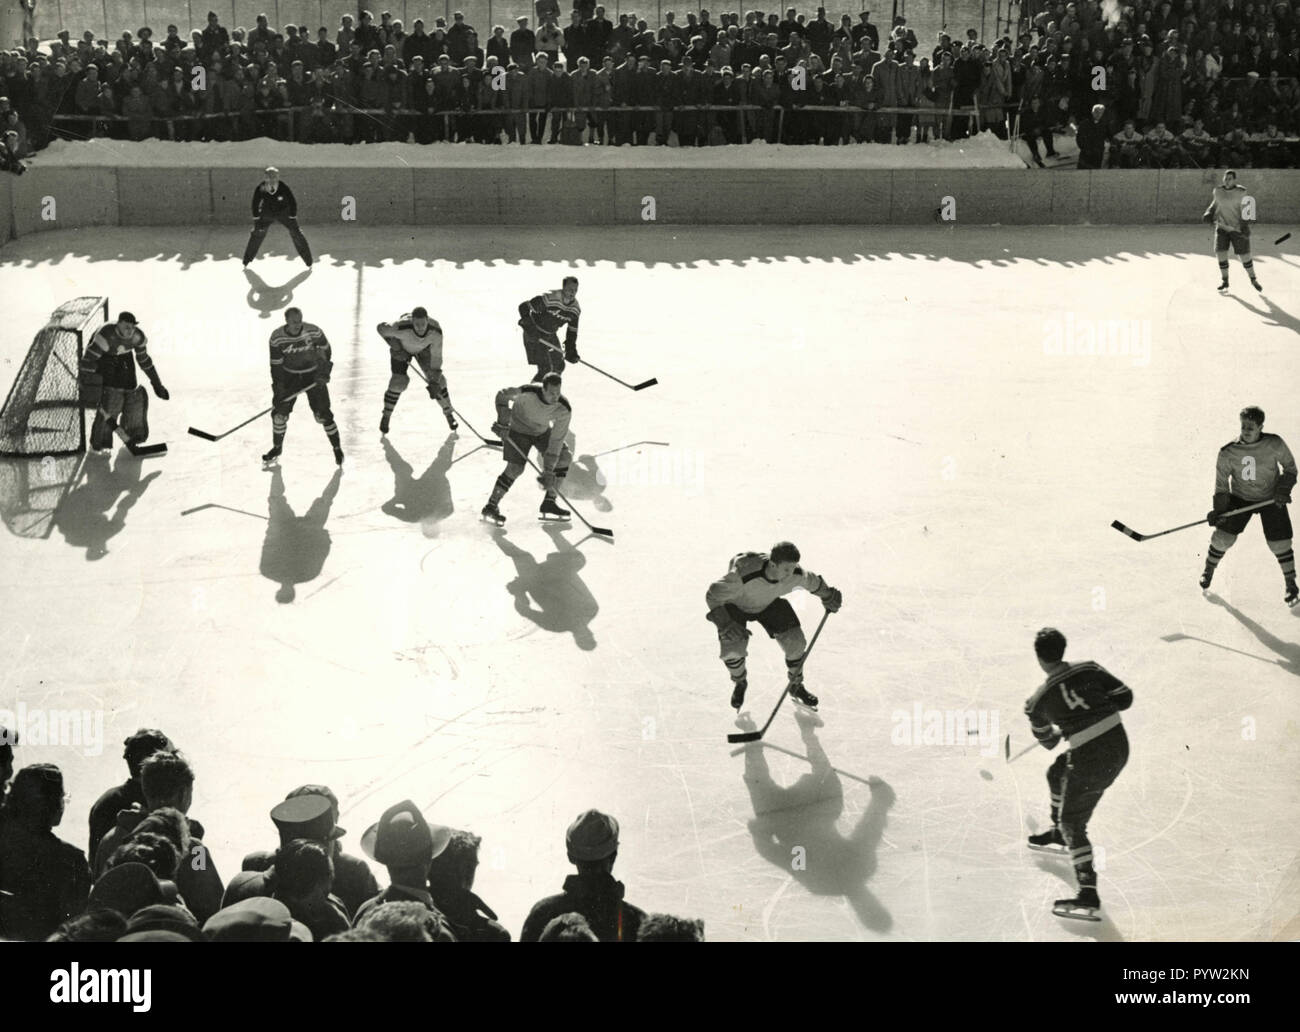 Ice hockey match, Aroa, Switzerland 1950s - Stock Image